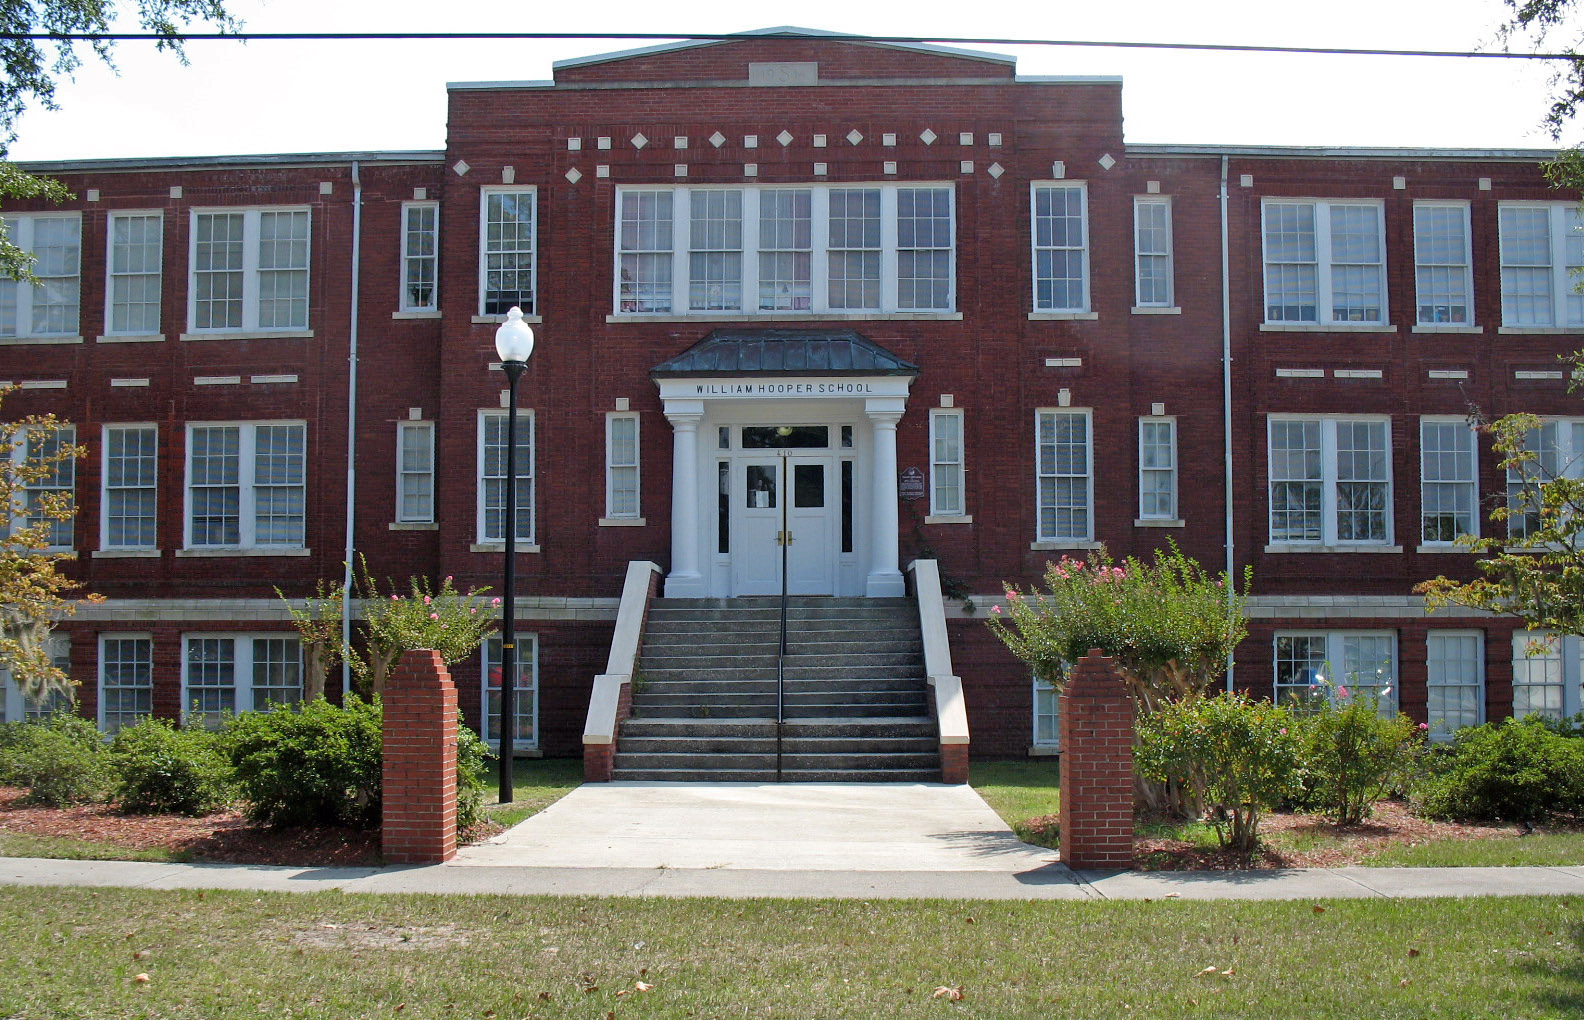 File:William Hooper School (Wilmington, NC).JPG